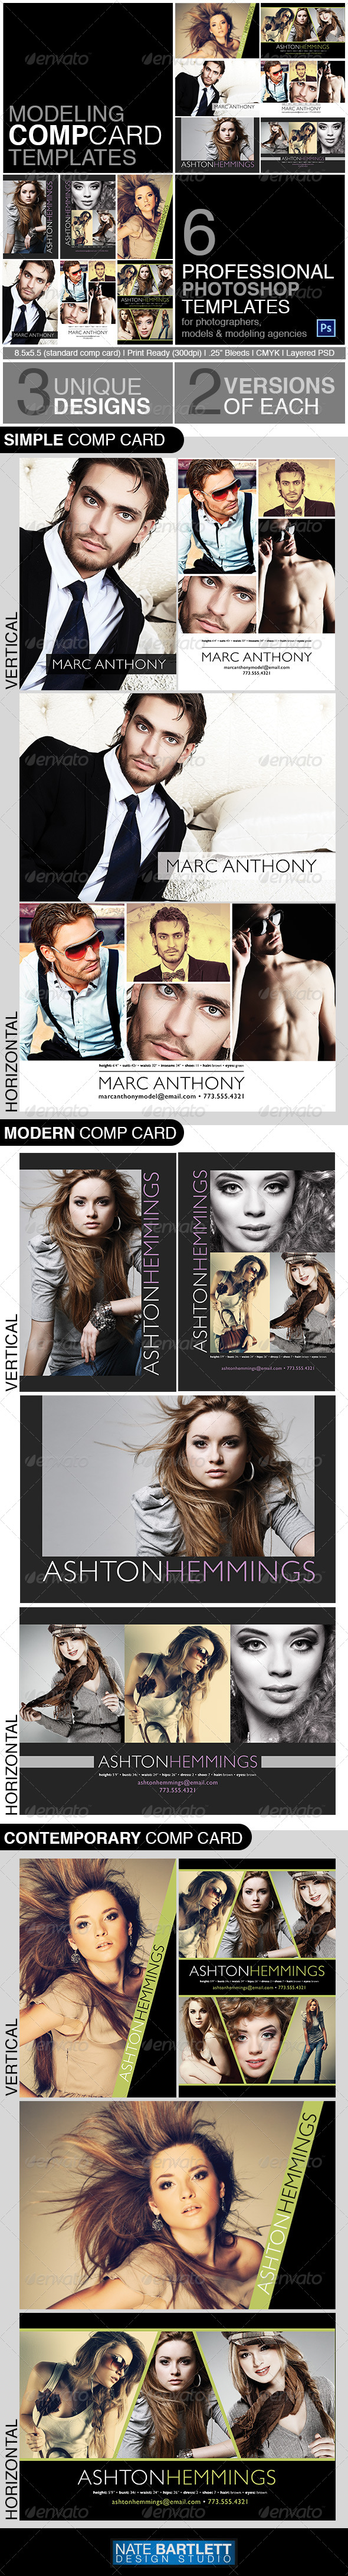 free model comp card template psd - model comp card template kit graphicriver